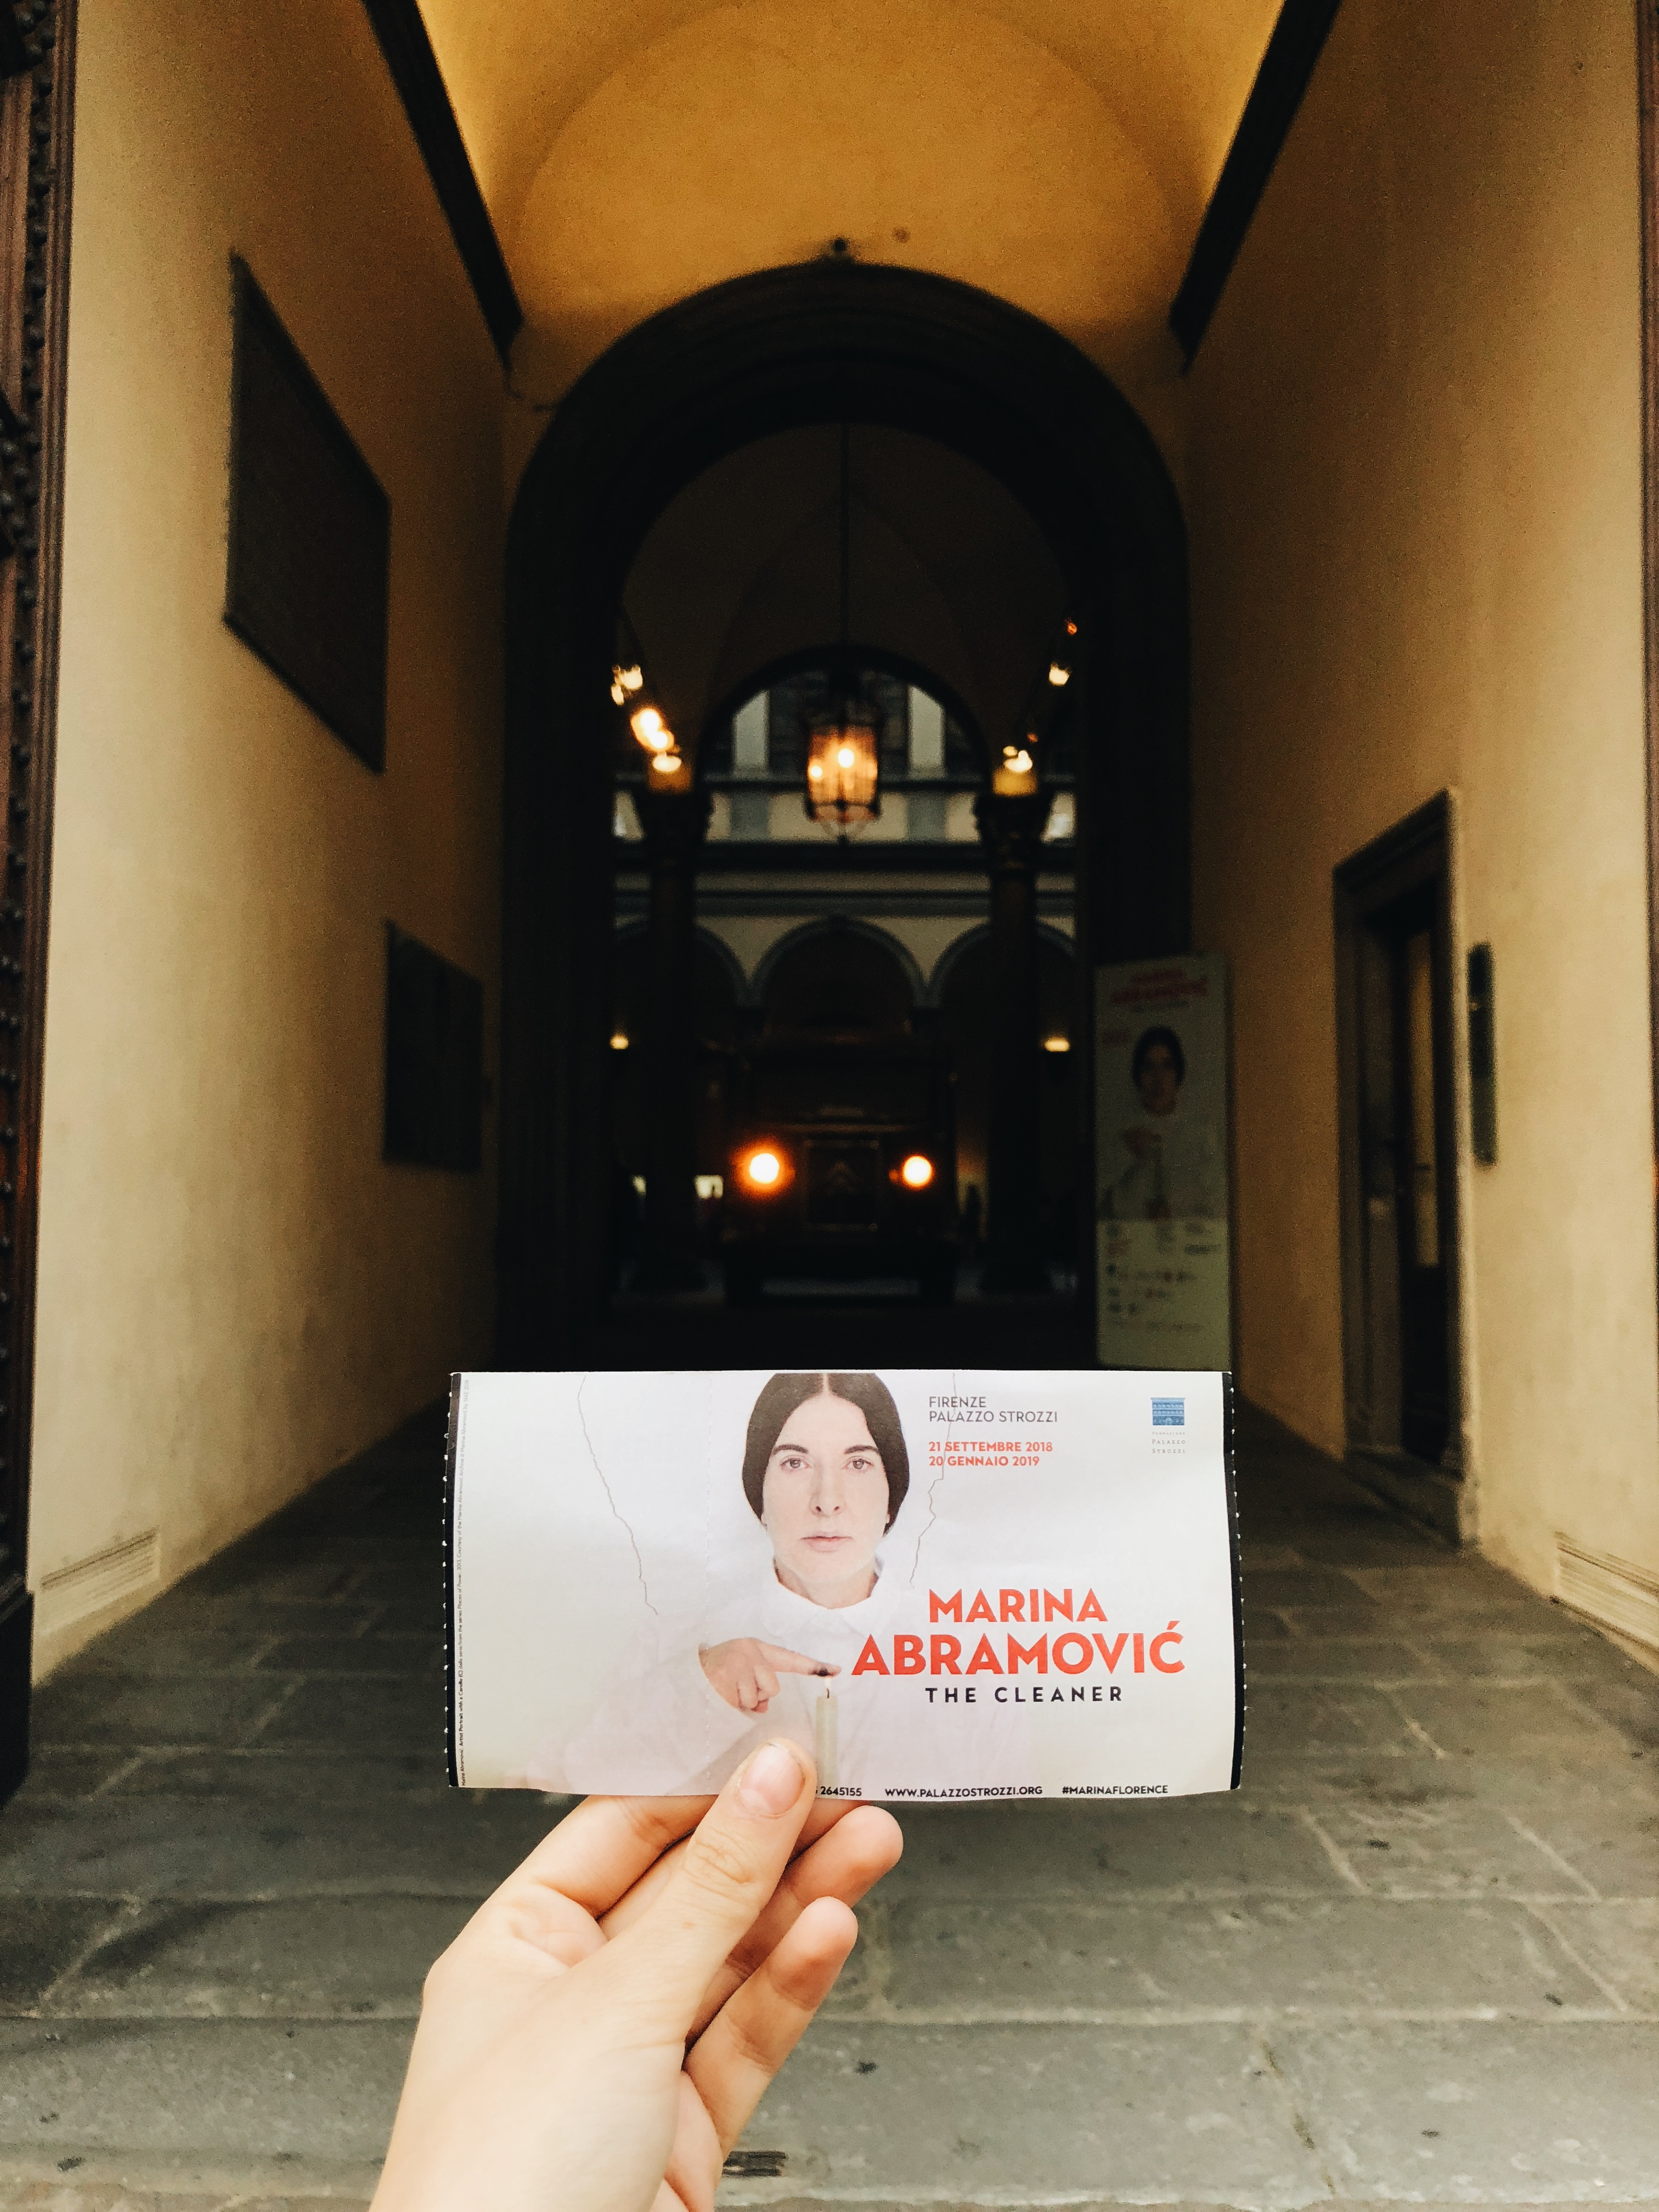 Marina Abarmovic's The Cleaner at Palazzo Strozzi